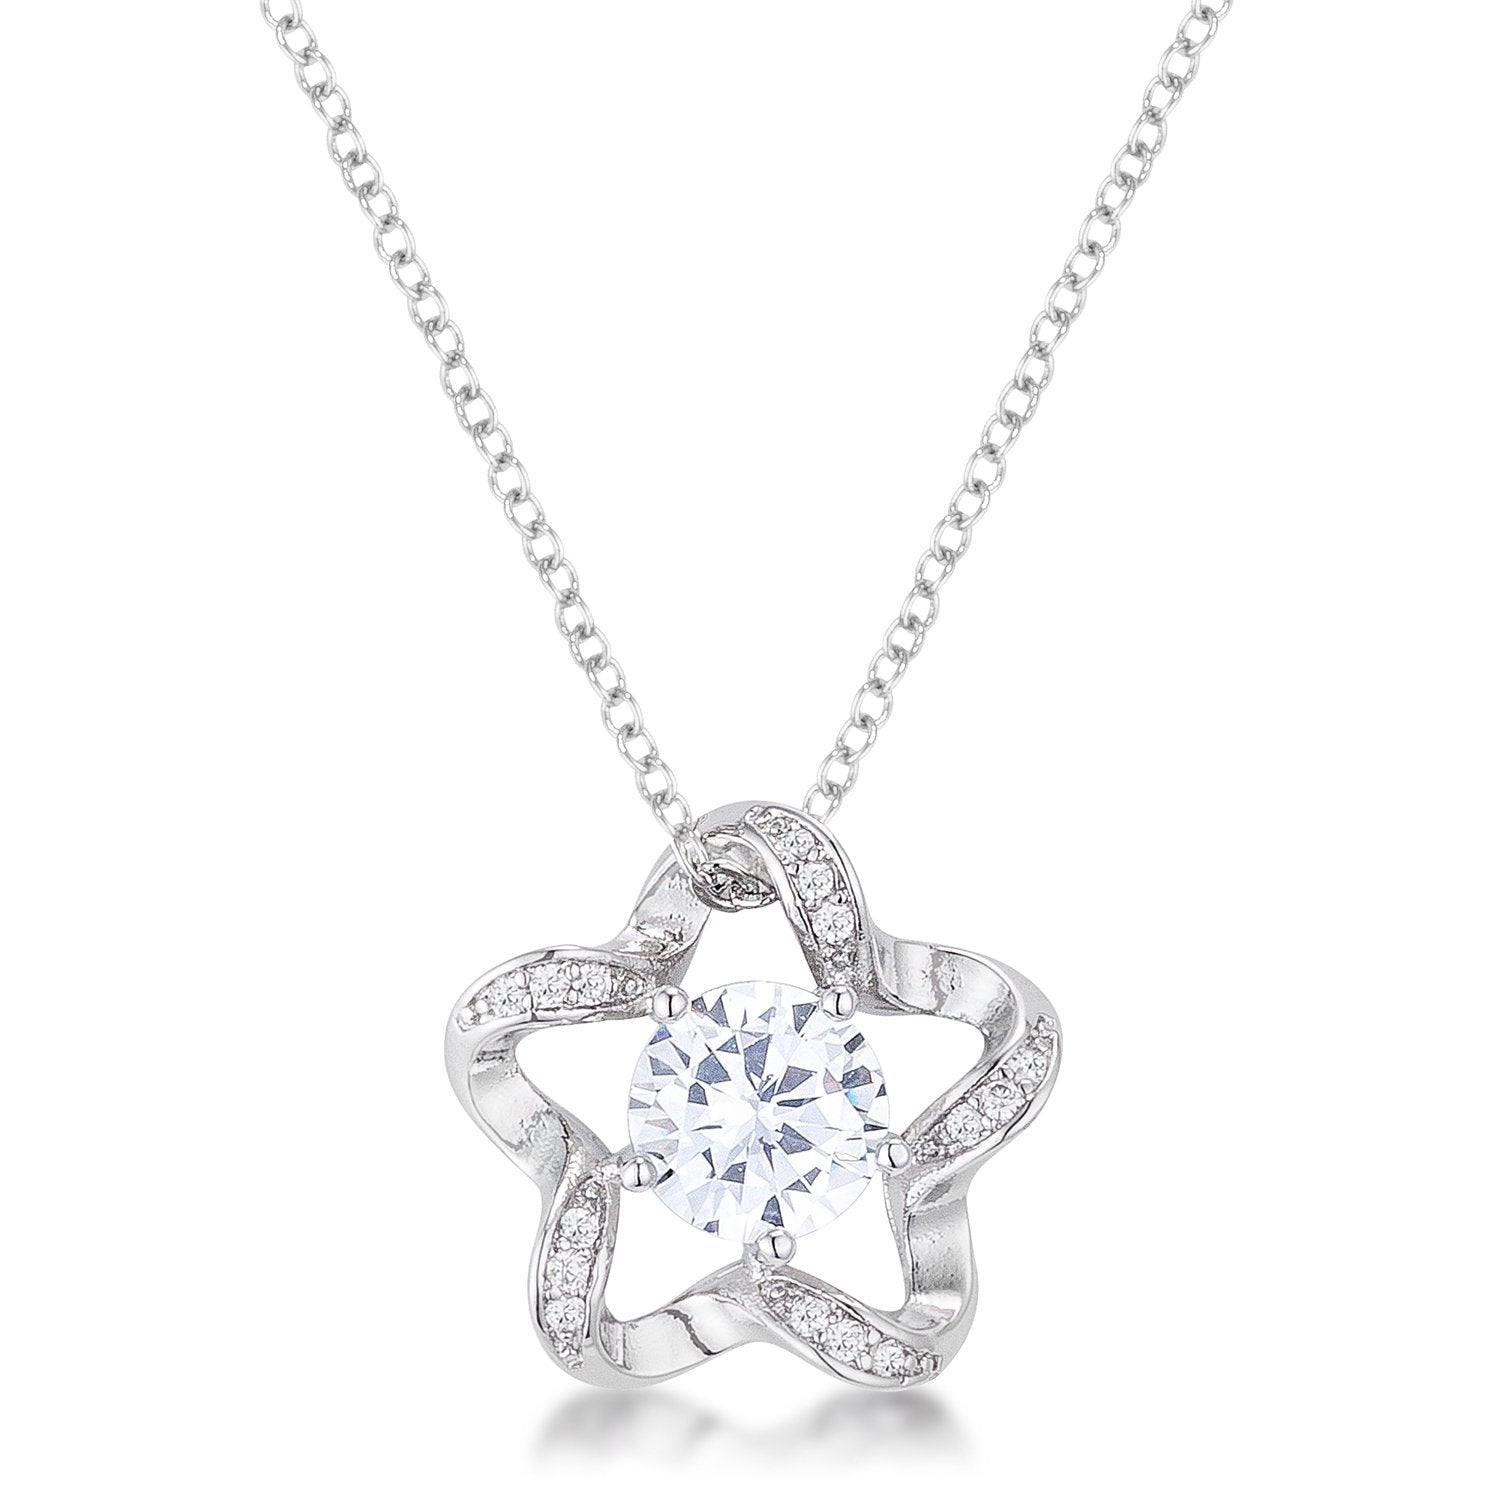 7mm Cubic Zirconia Star Fashion Pendant - P11109R-C01